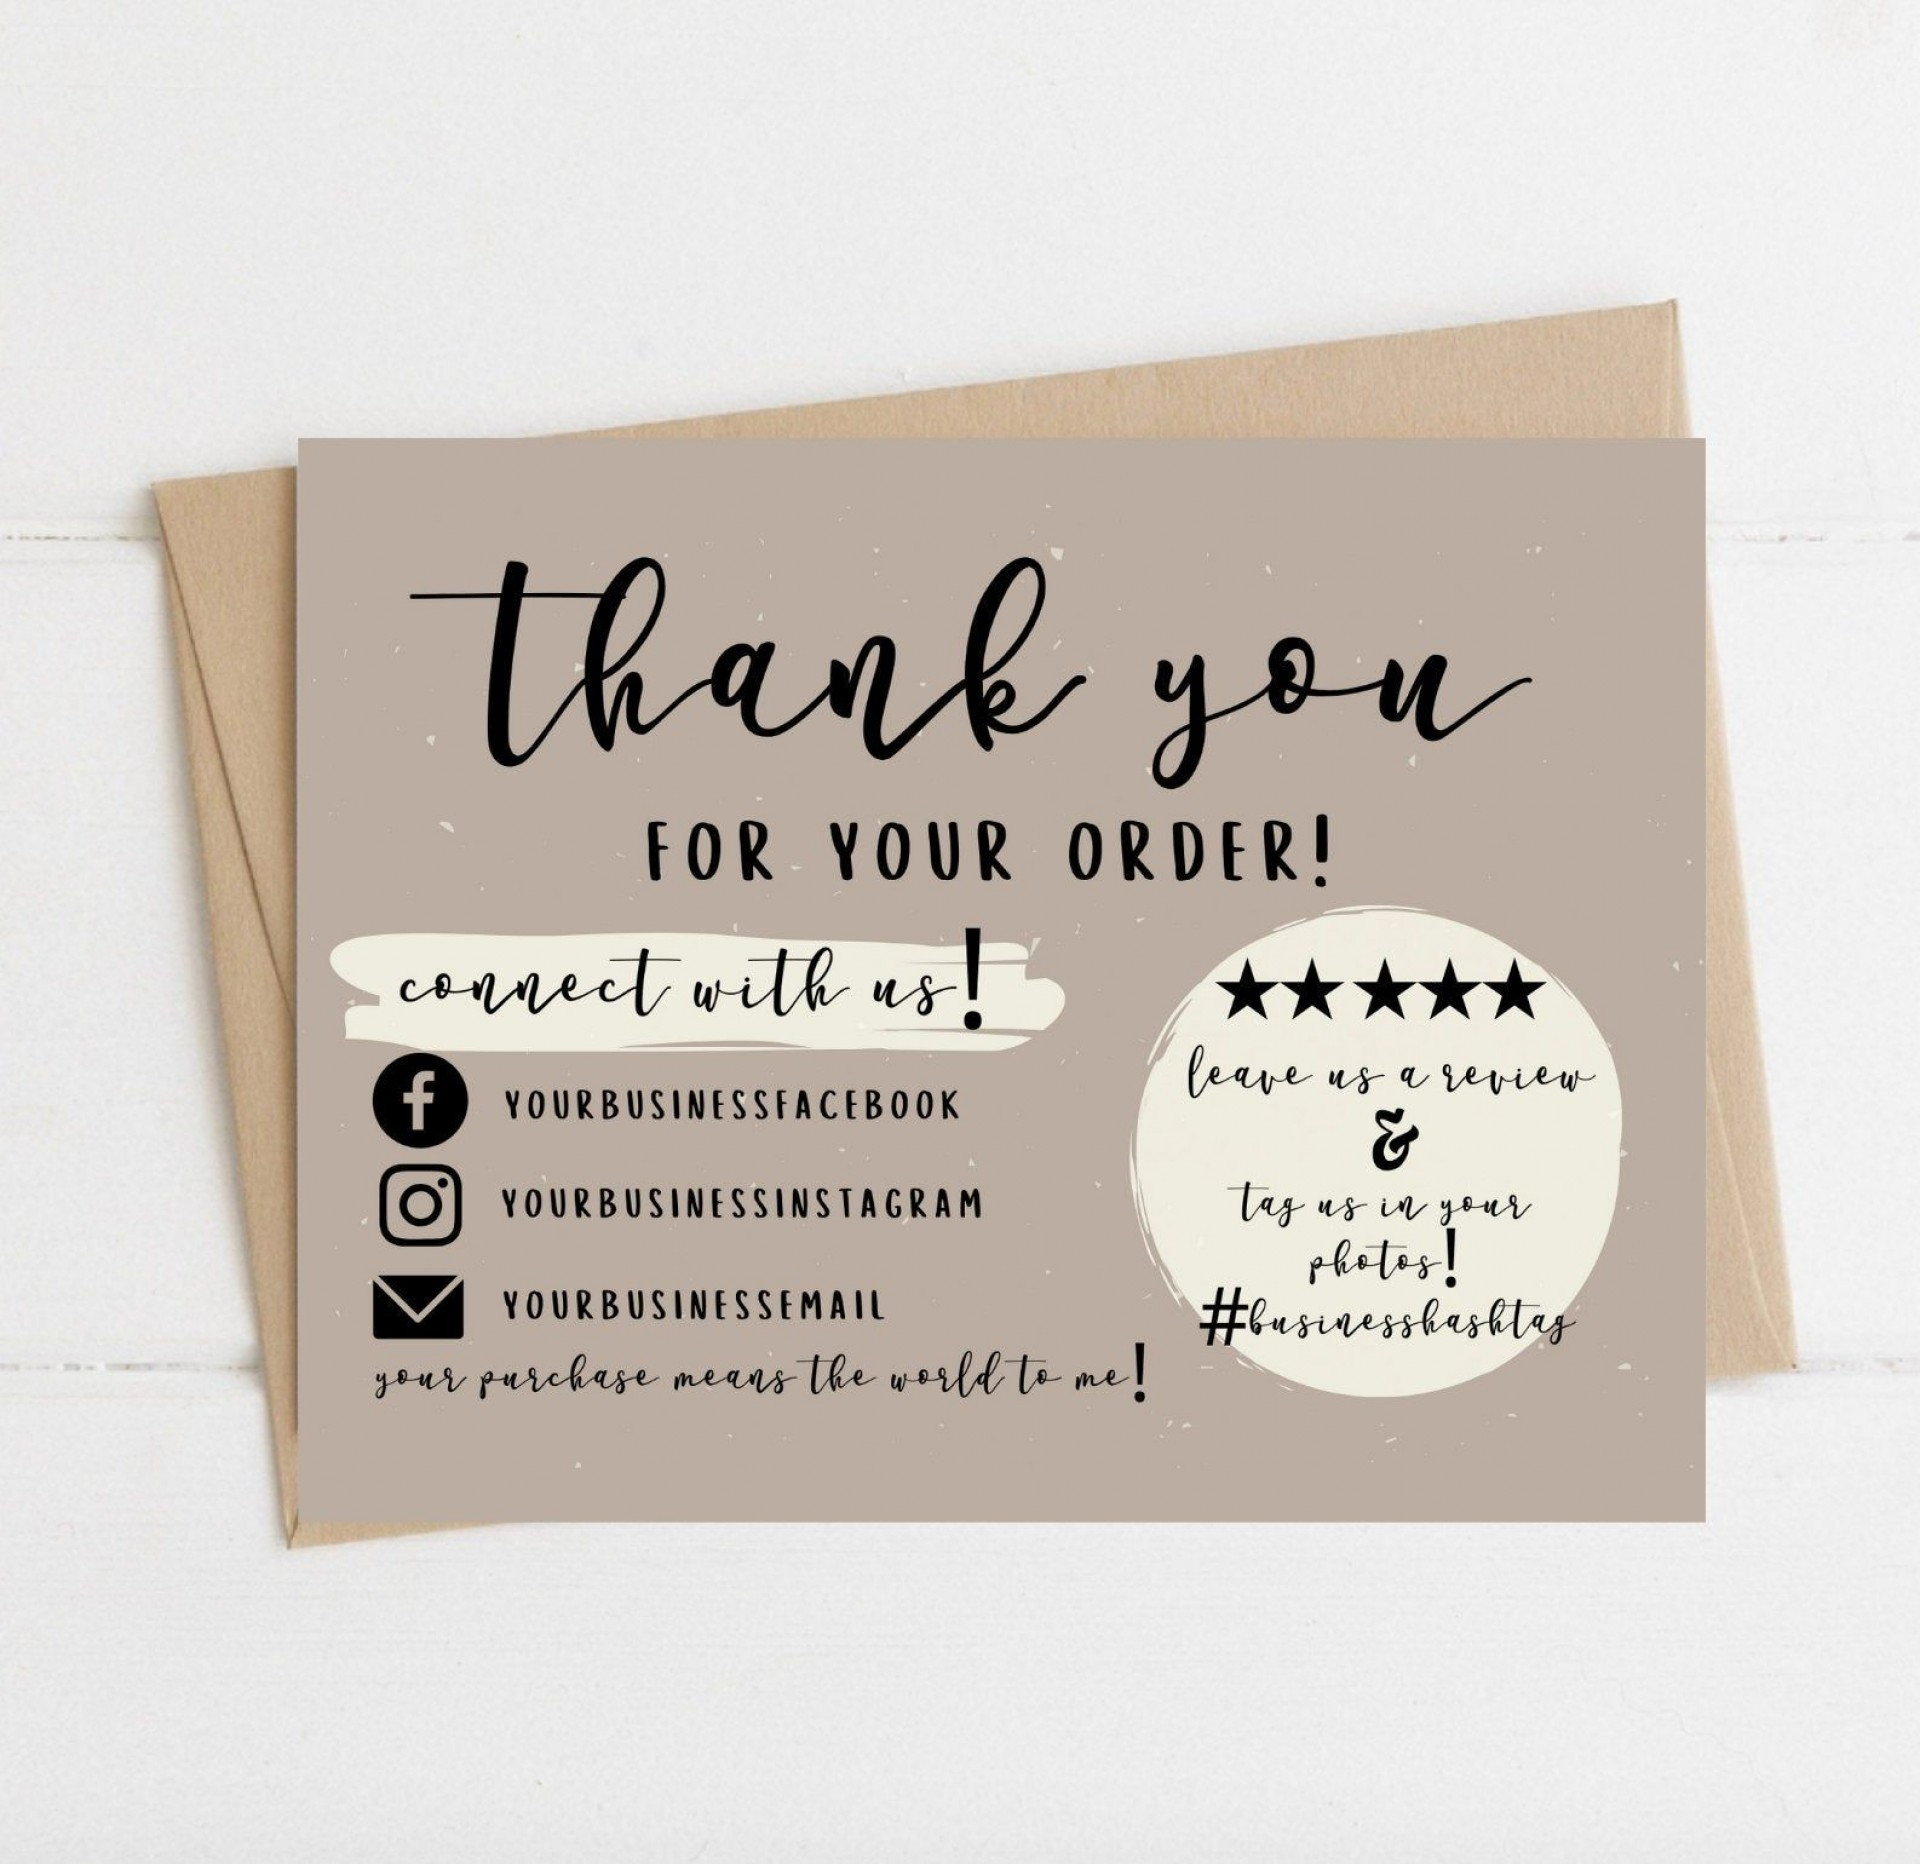 007 Unbelievable Thank You Note Template Pdf High Definition  Card Free Letter Example For Student1920